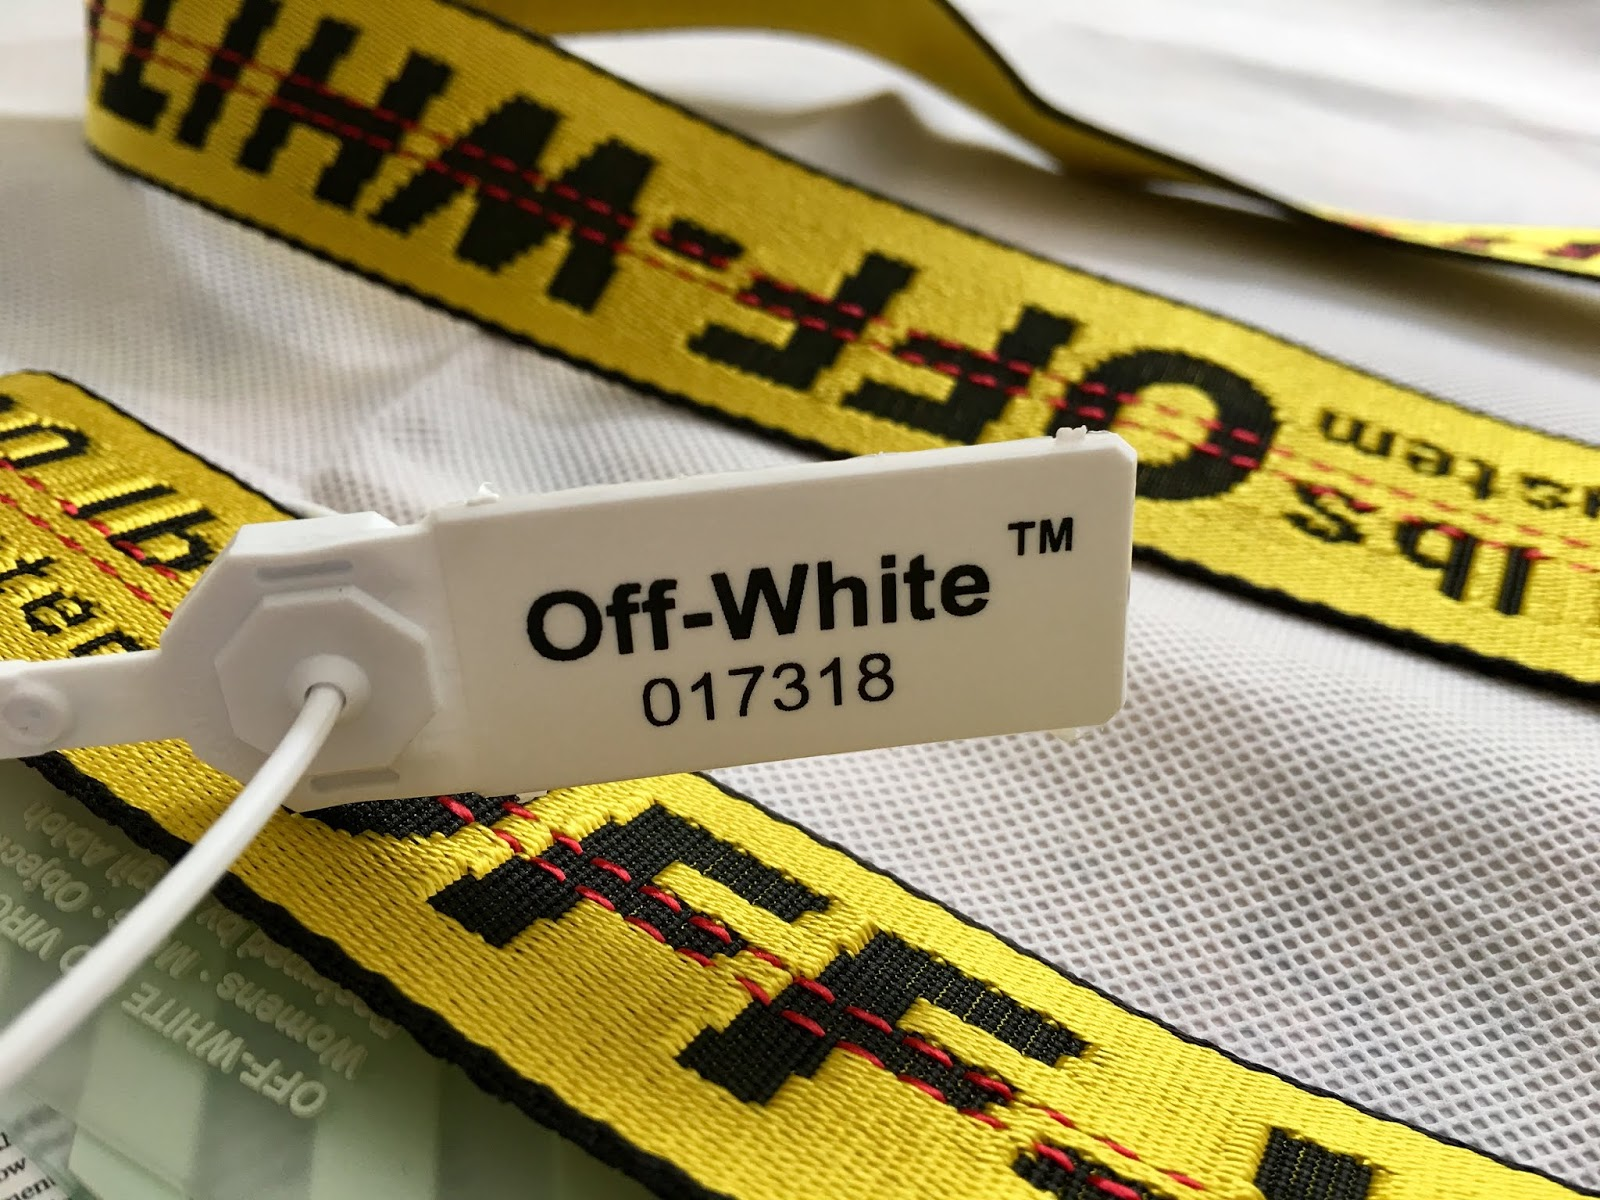 Biggest Streetwear Skateboarding And Fashion Clothing Brands Photo And Video Reviews Blog Off White Classic Industrial Yellow Belt Review